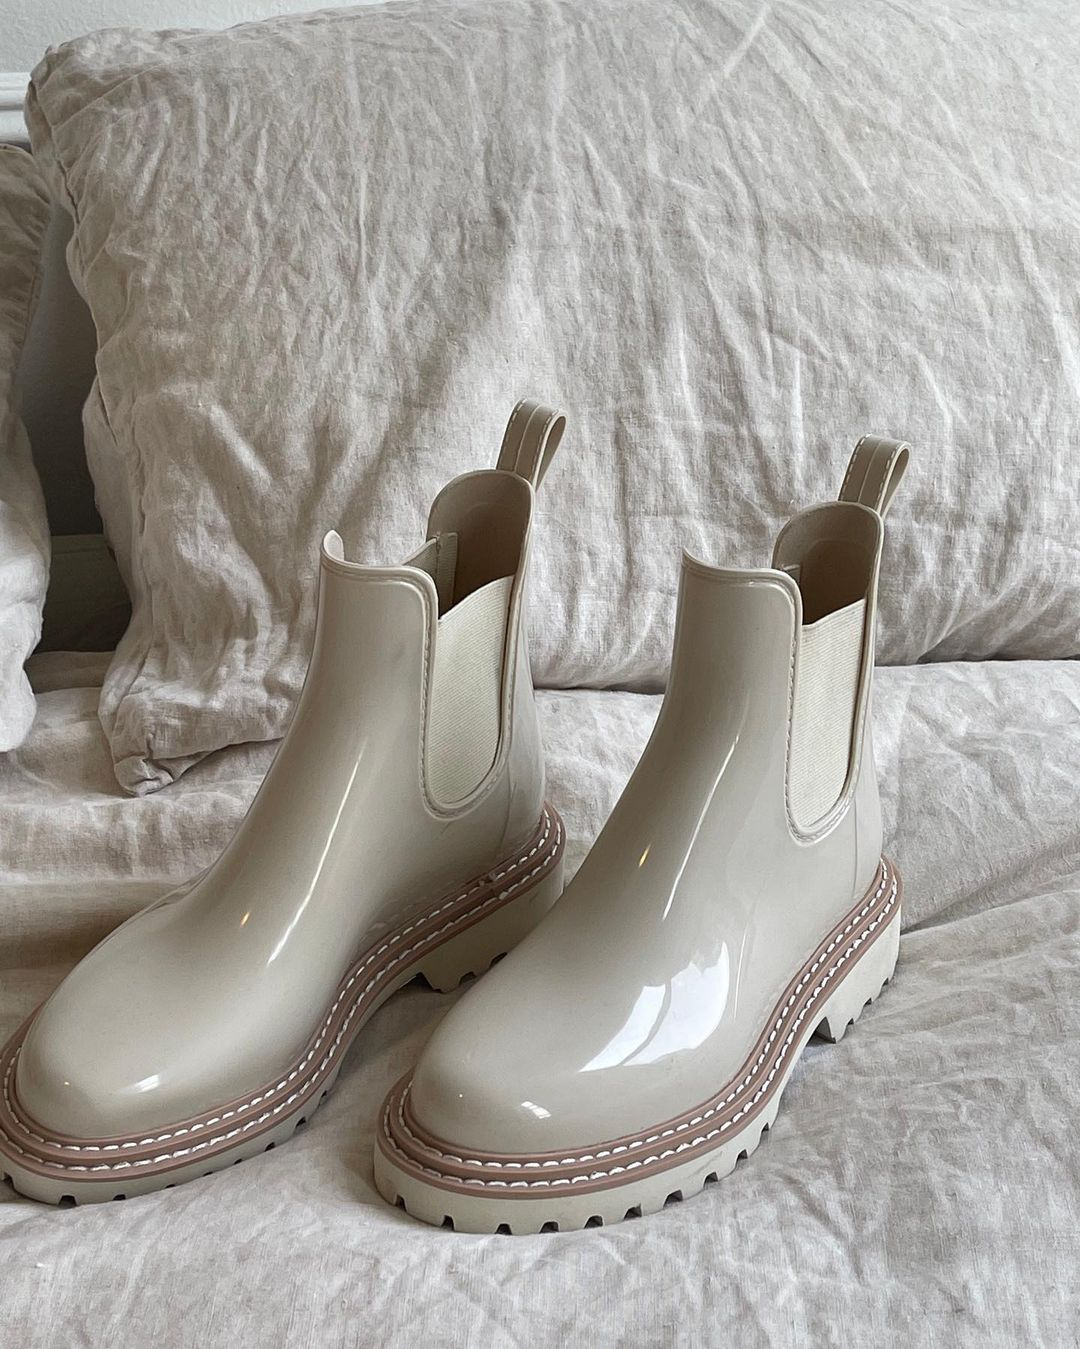 Ivory patent pull-on design rain boots with almond toe featuring rear pull loop and elastic gore panels for a secure, flexible fit